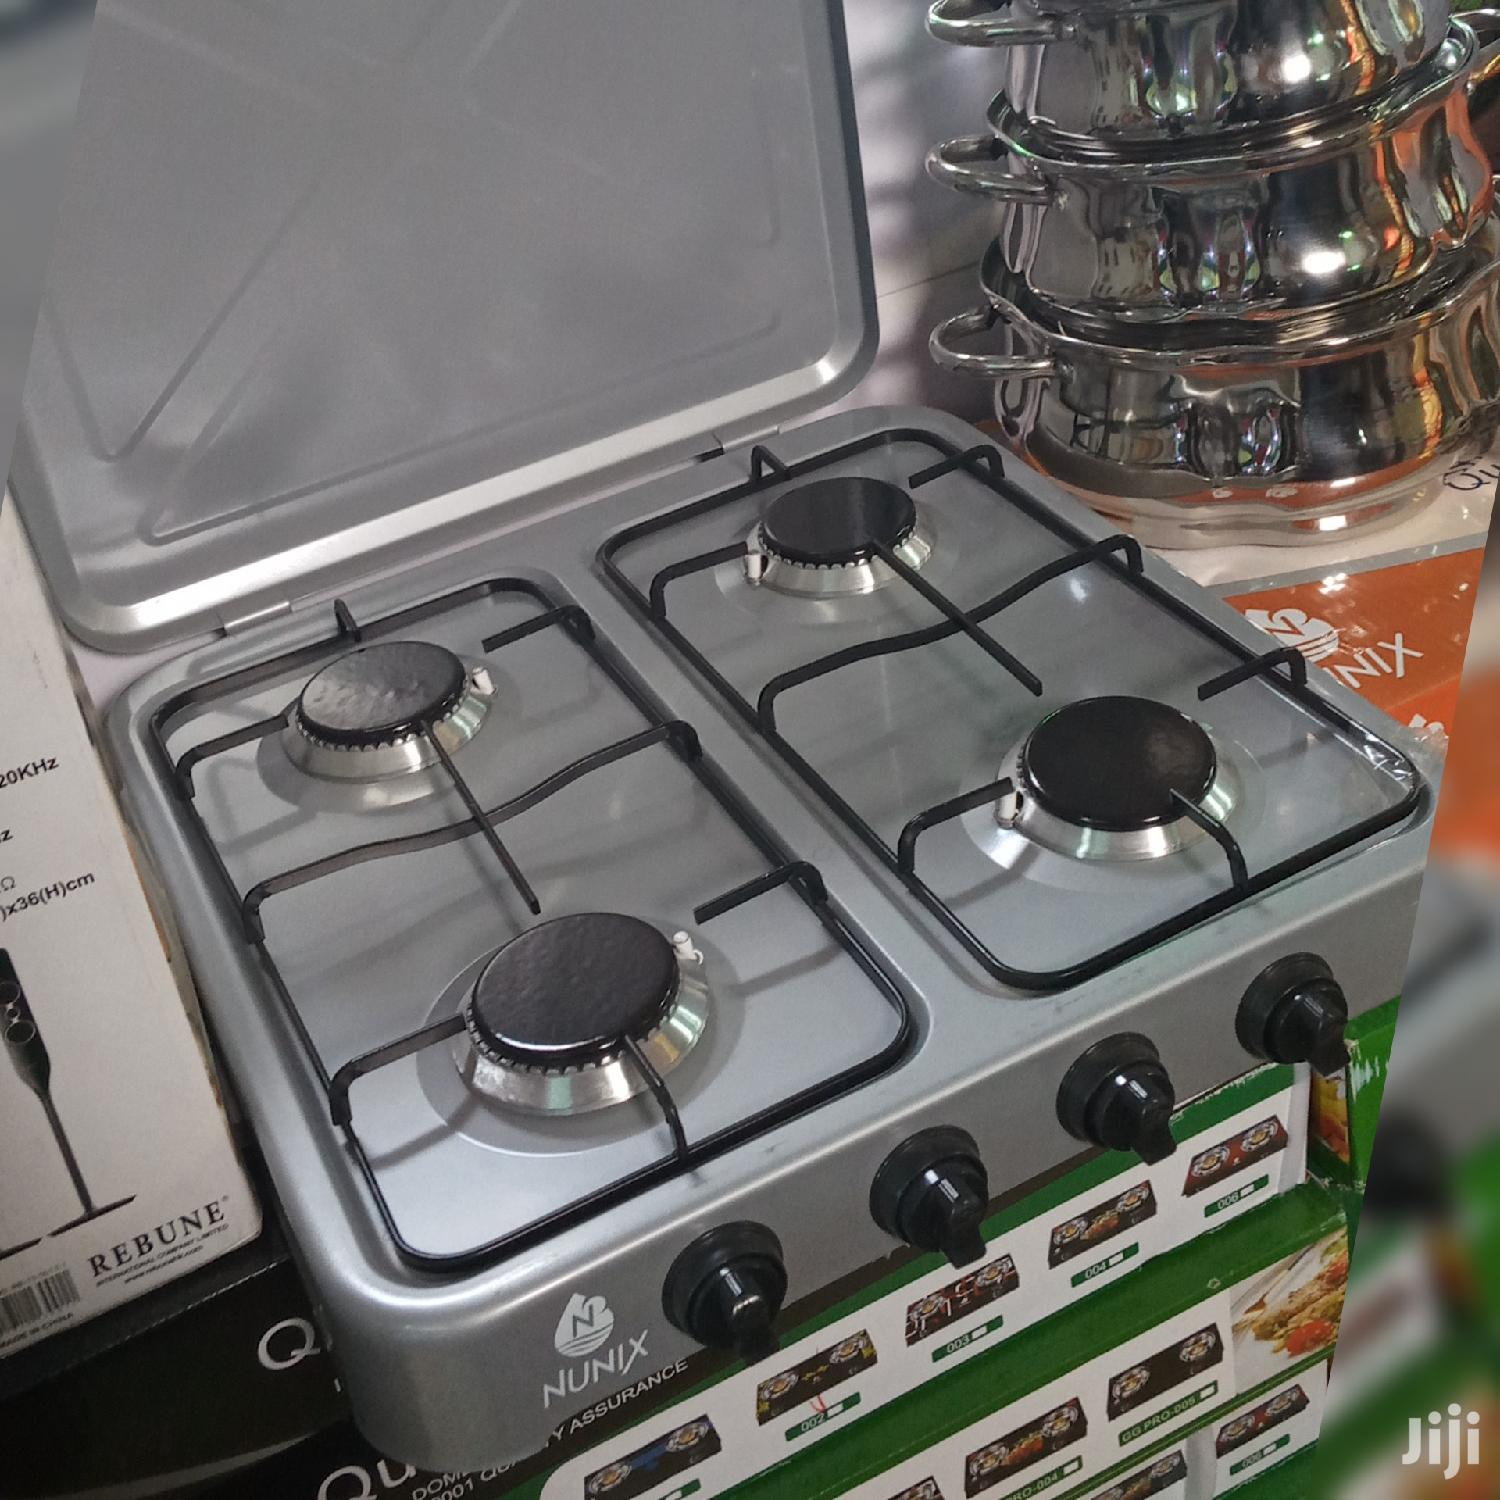 Archive: 4 Burner Cooking Gas Stove